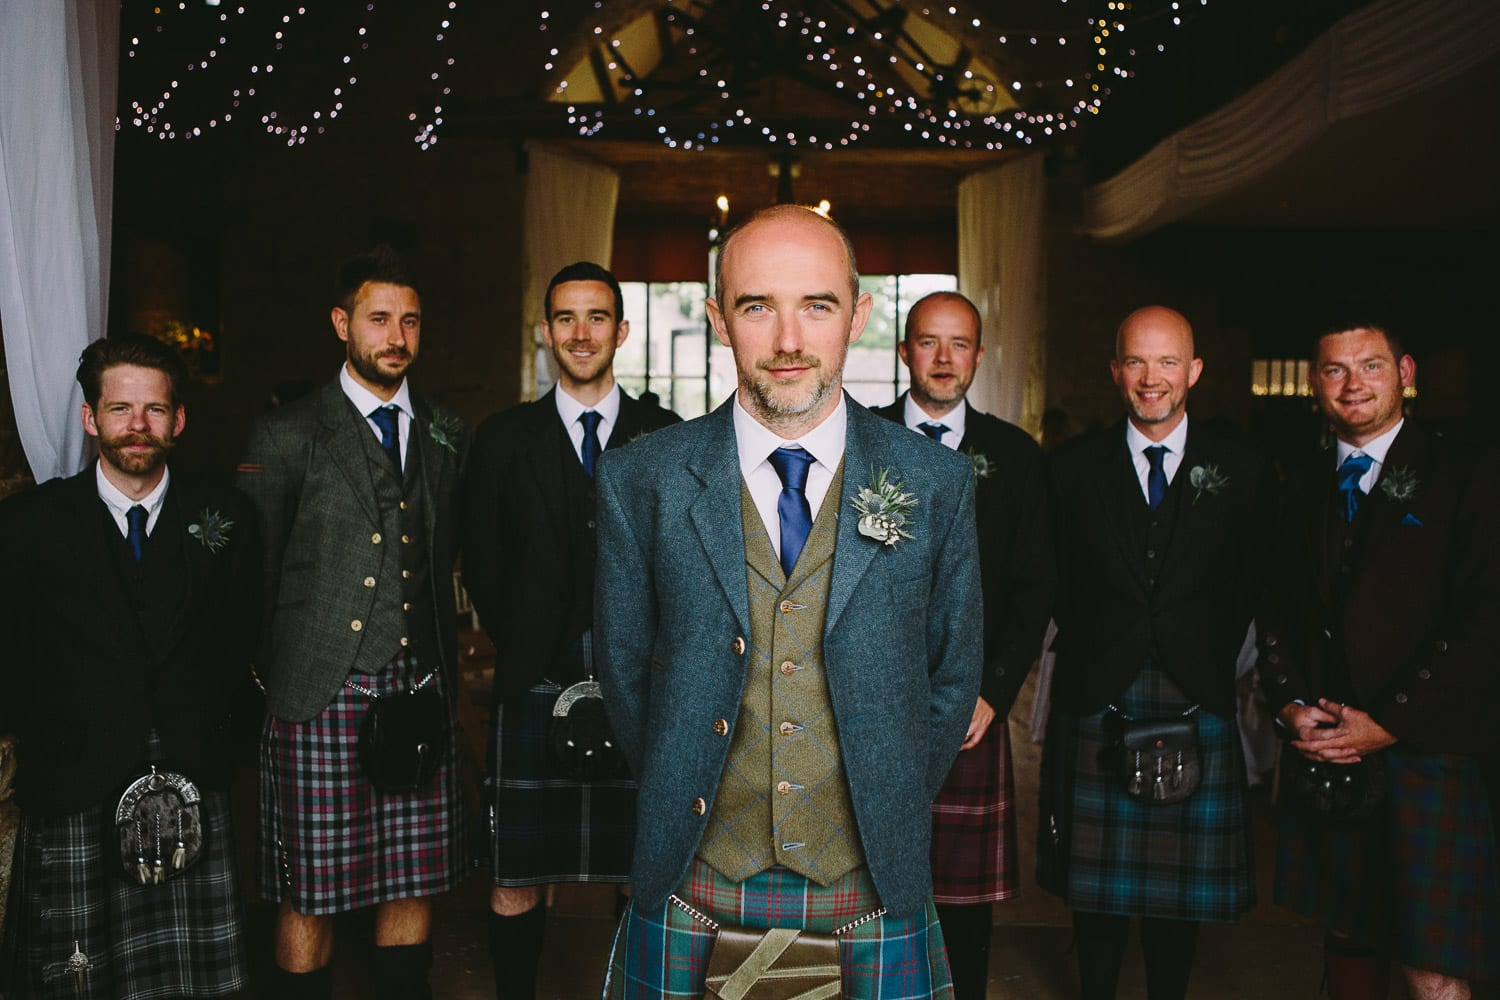 A groom and the ushers lined up in their kilts